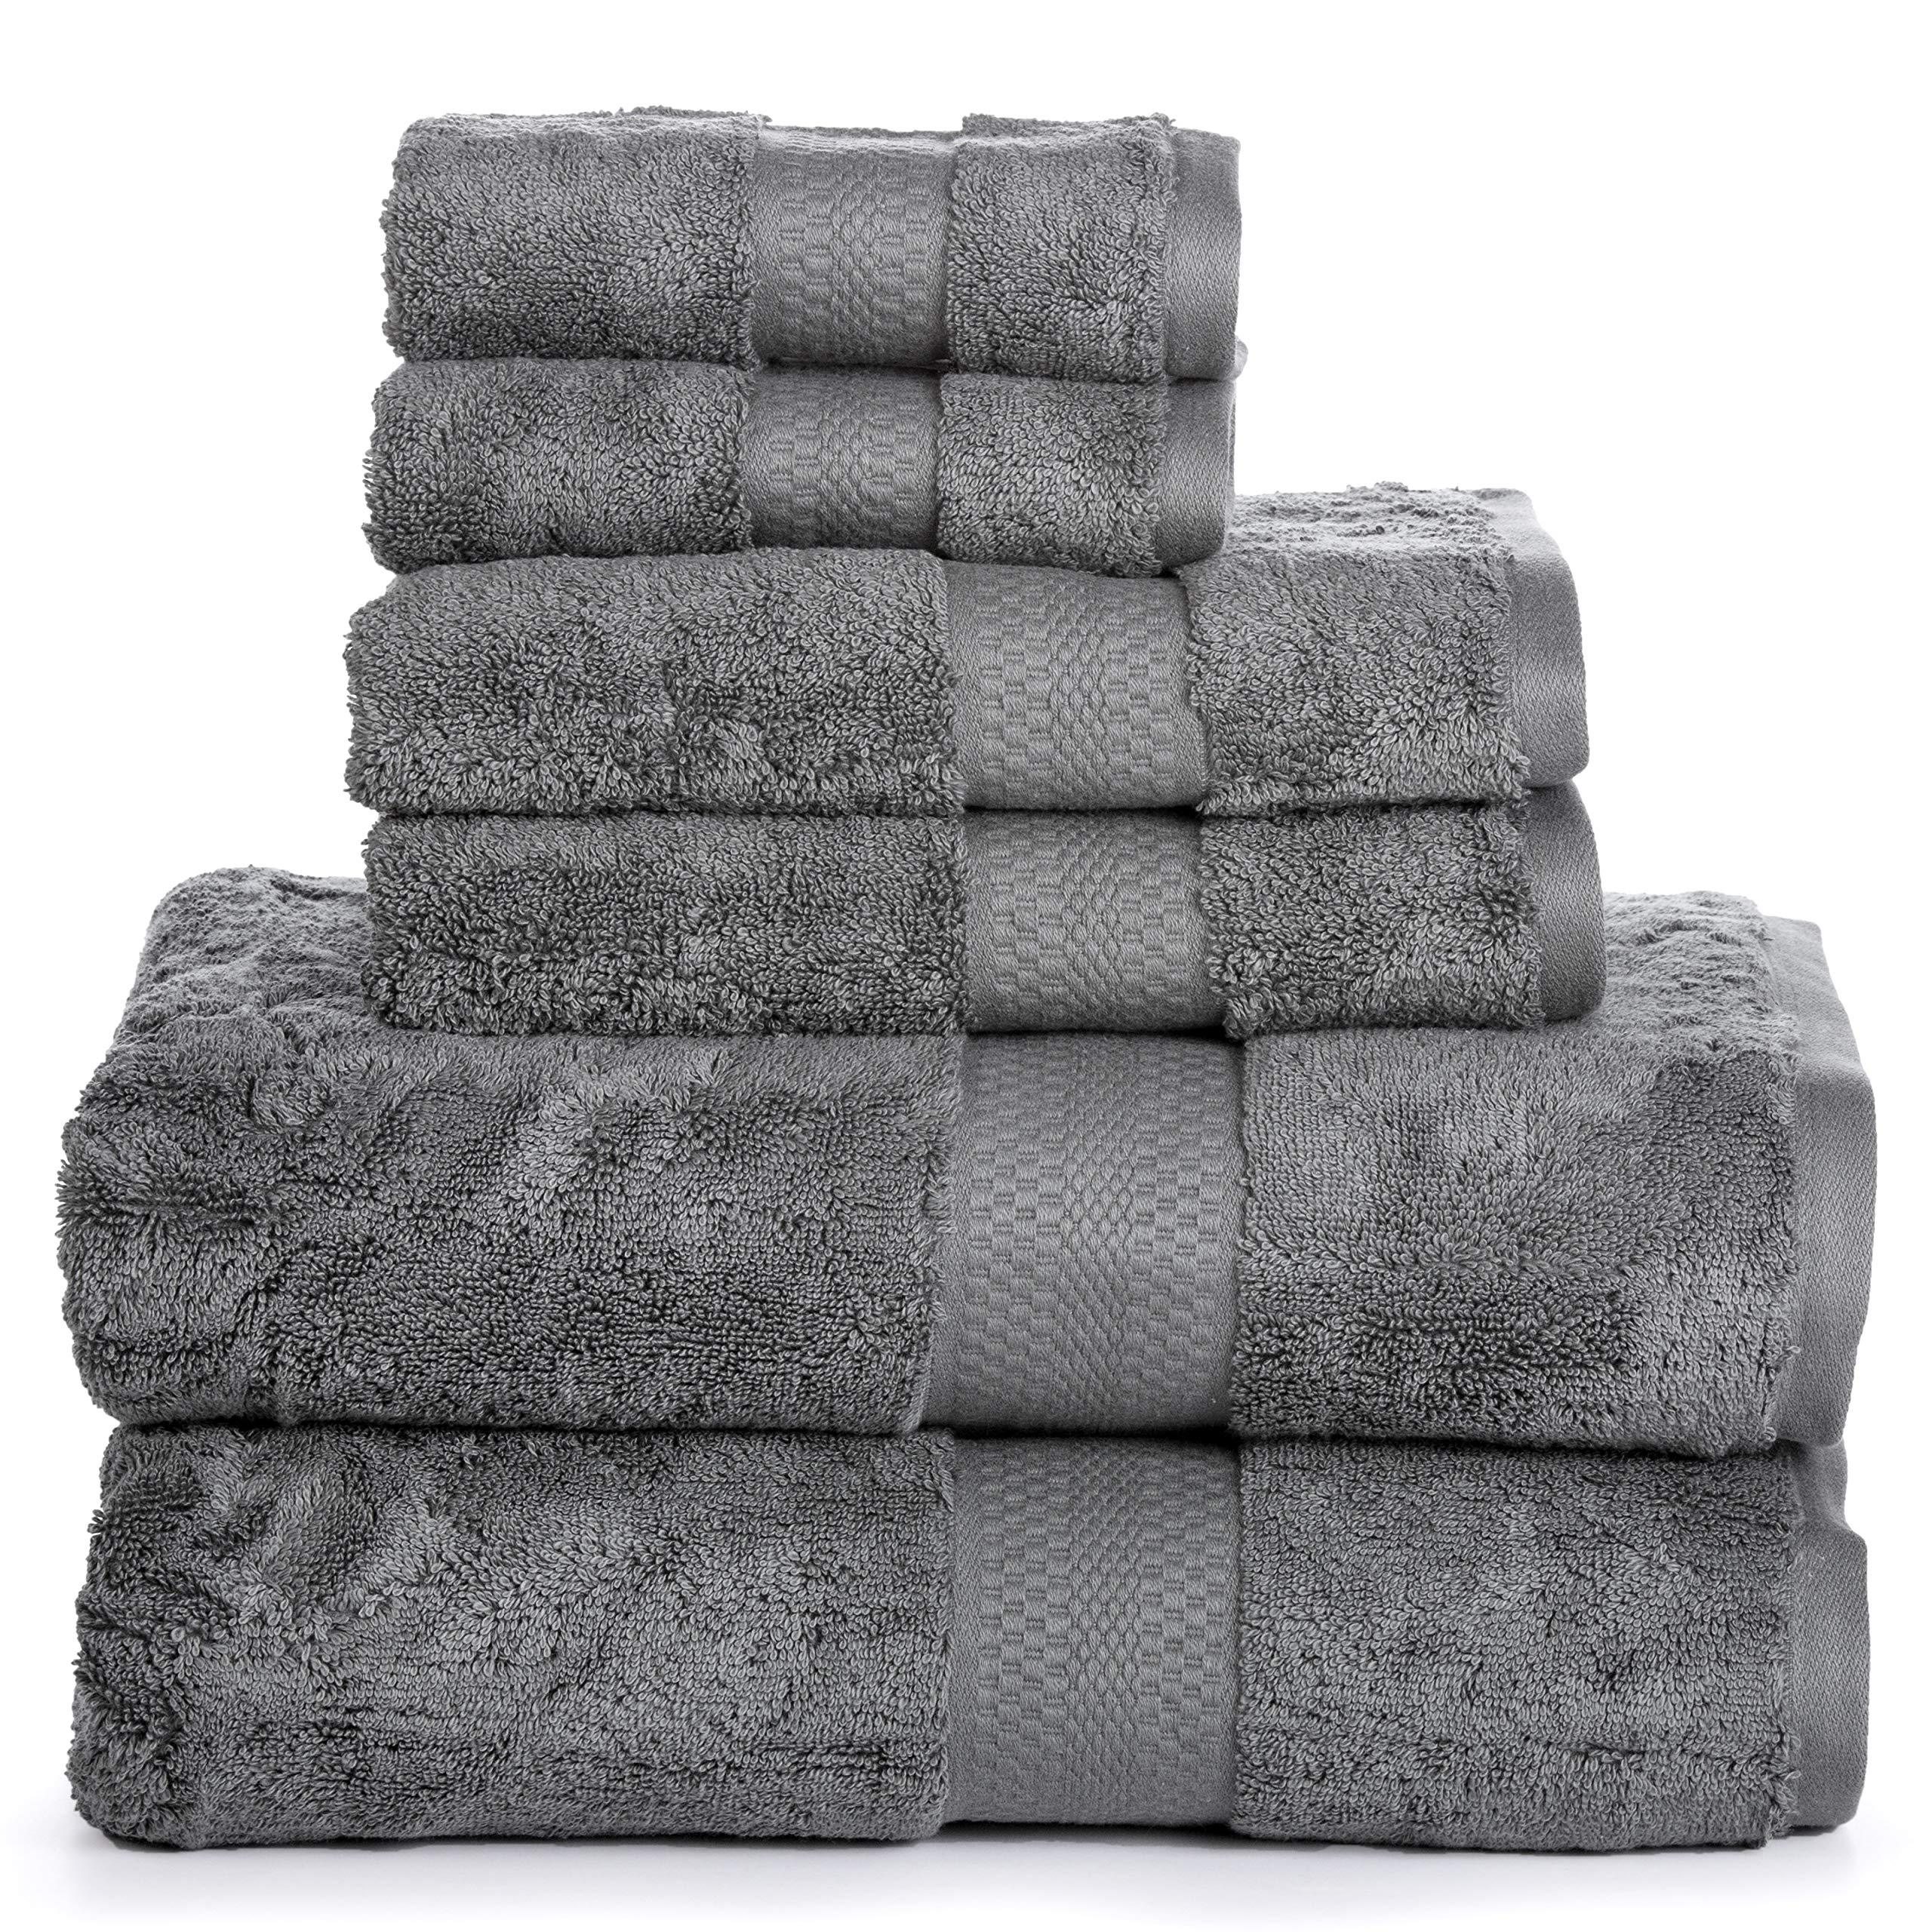 Luxury Cotton Bathroom Bath Towels: 6 Piece Towel Set for Household Bathrooms - Soft Plush and Absorbent Cotton with Double Stitch Hems - Bath / Shower Towels, Hand Towels, and Washcloths - GREY